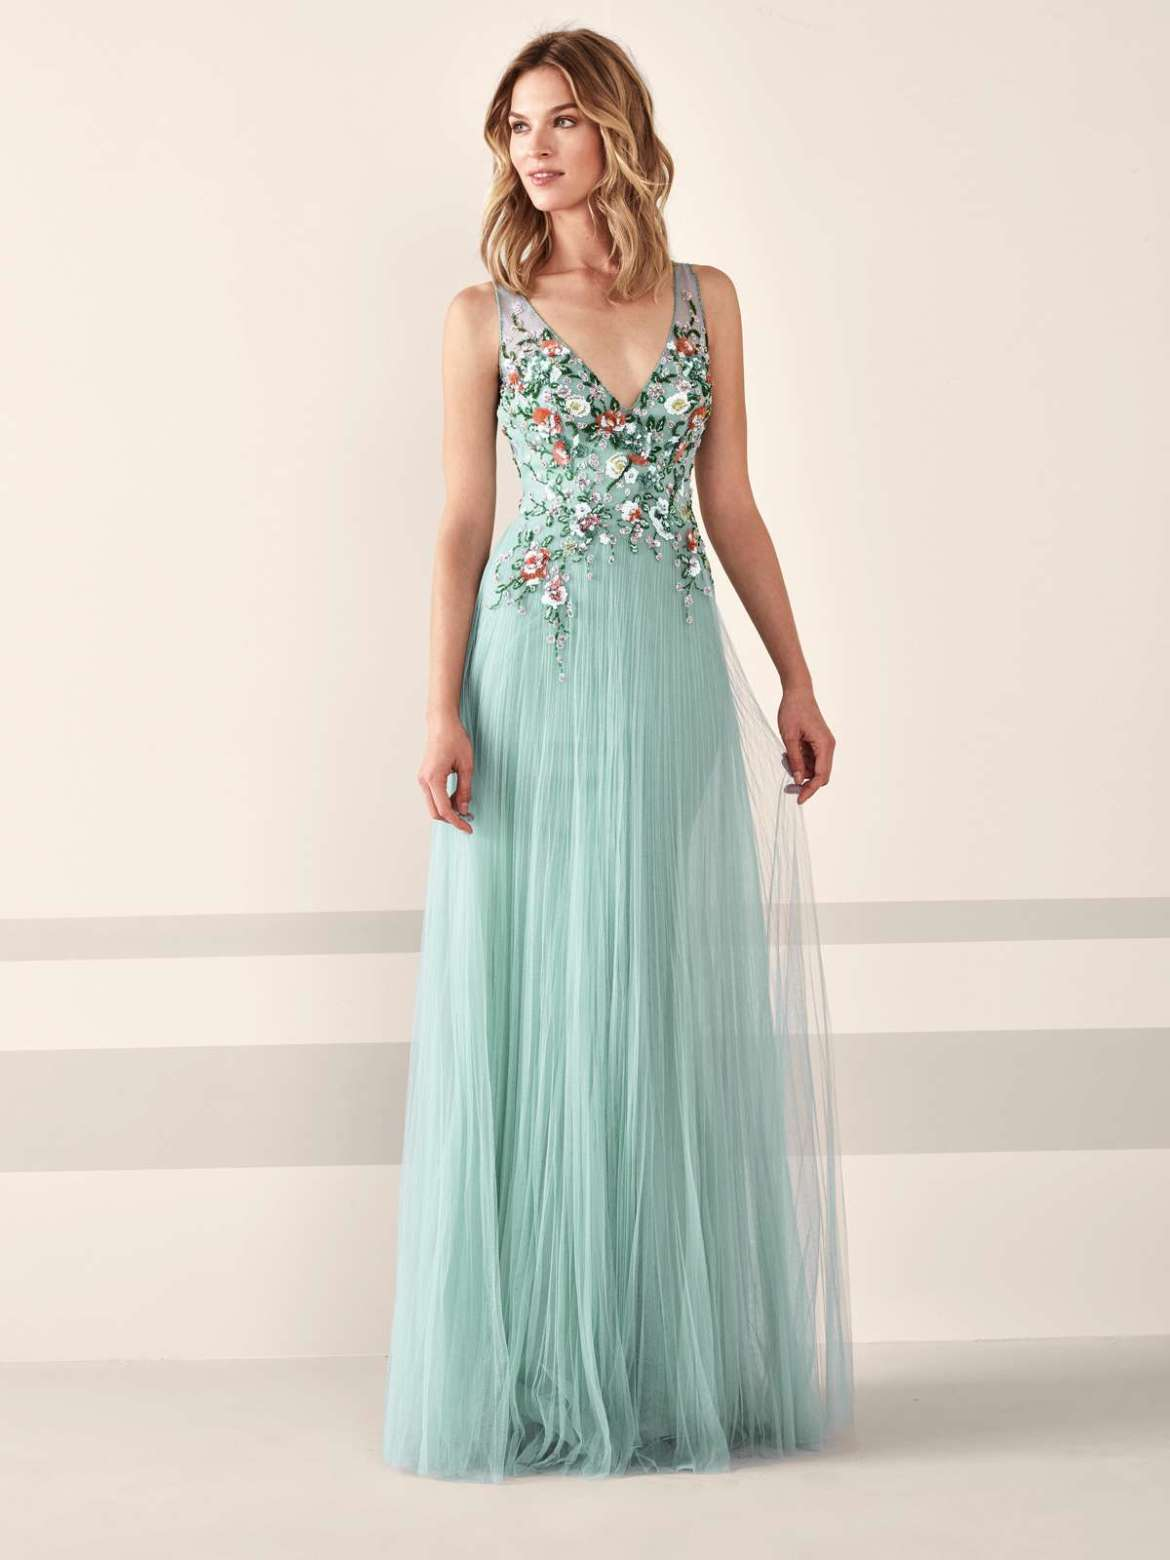 Gorgeous wedding guest dresses from Pronovias - Find Your Dream Dress